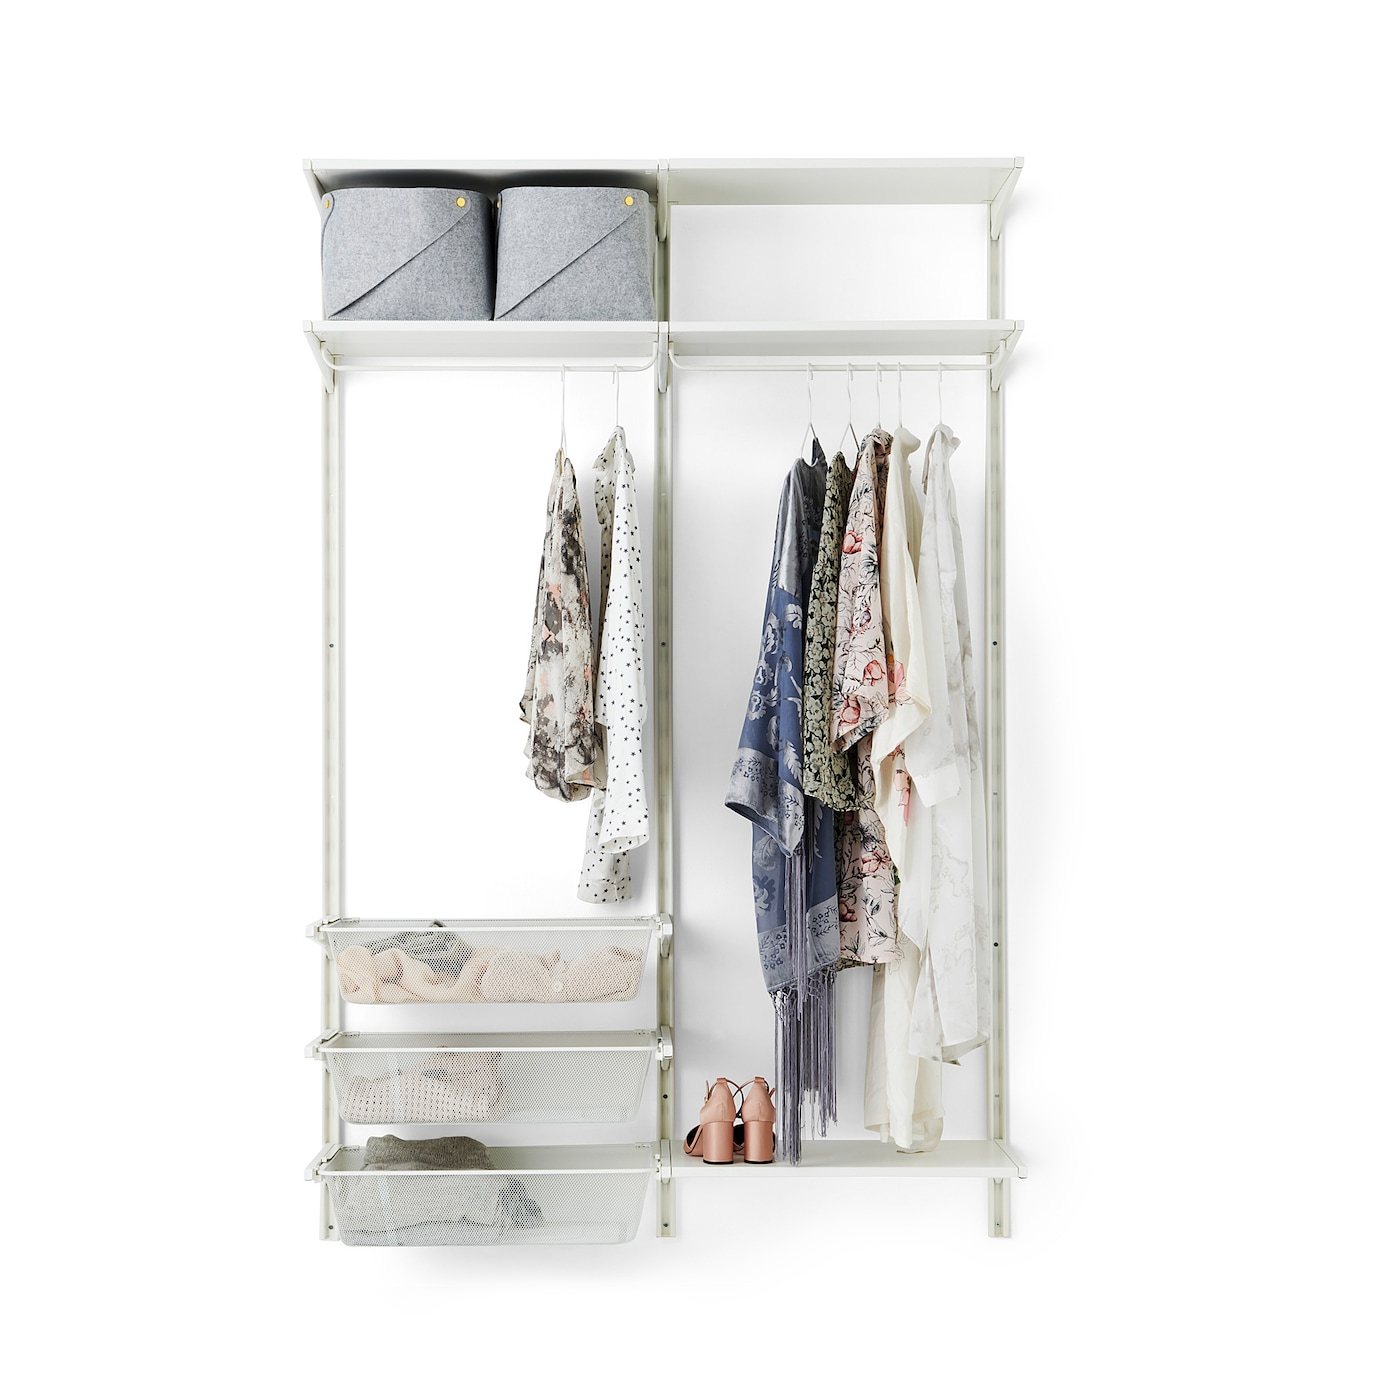 Ikea Algot Wall Uprightshelvesrod Can Also Be Used In Bathrooms